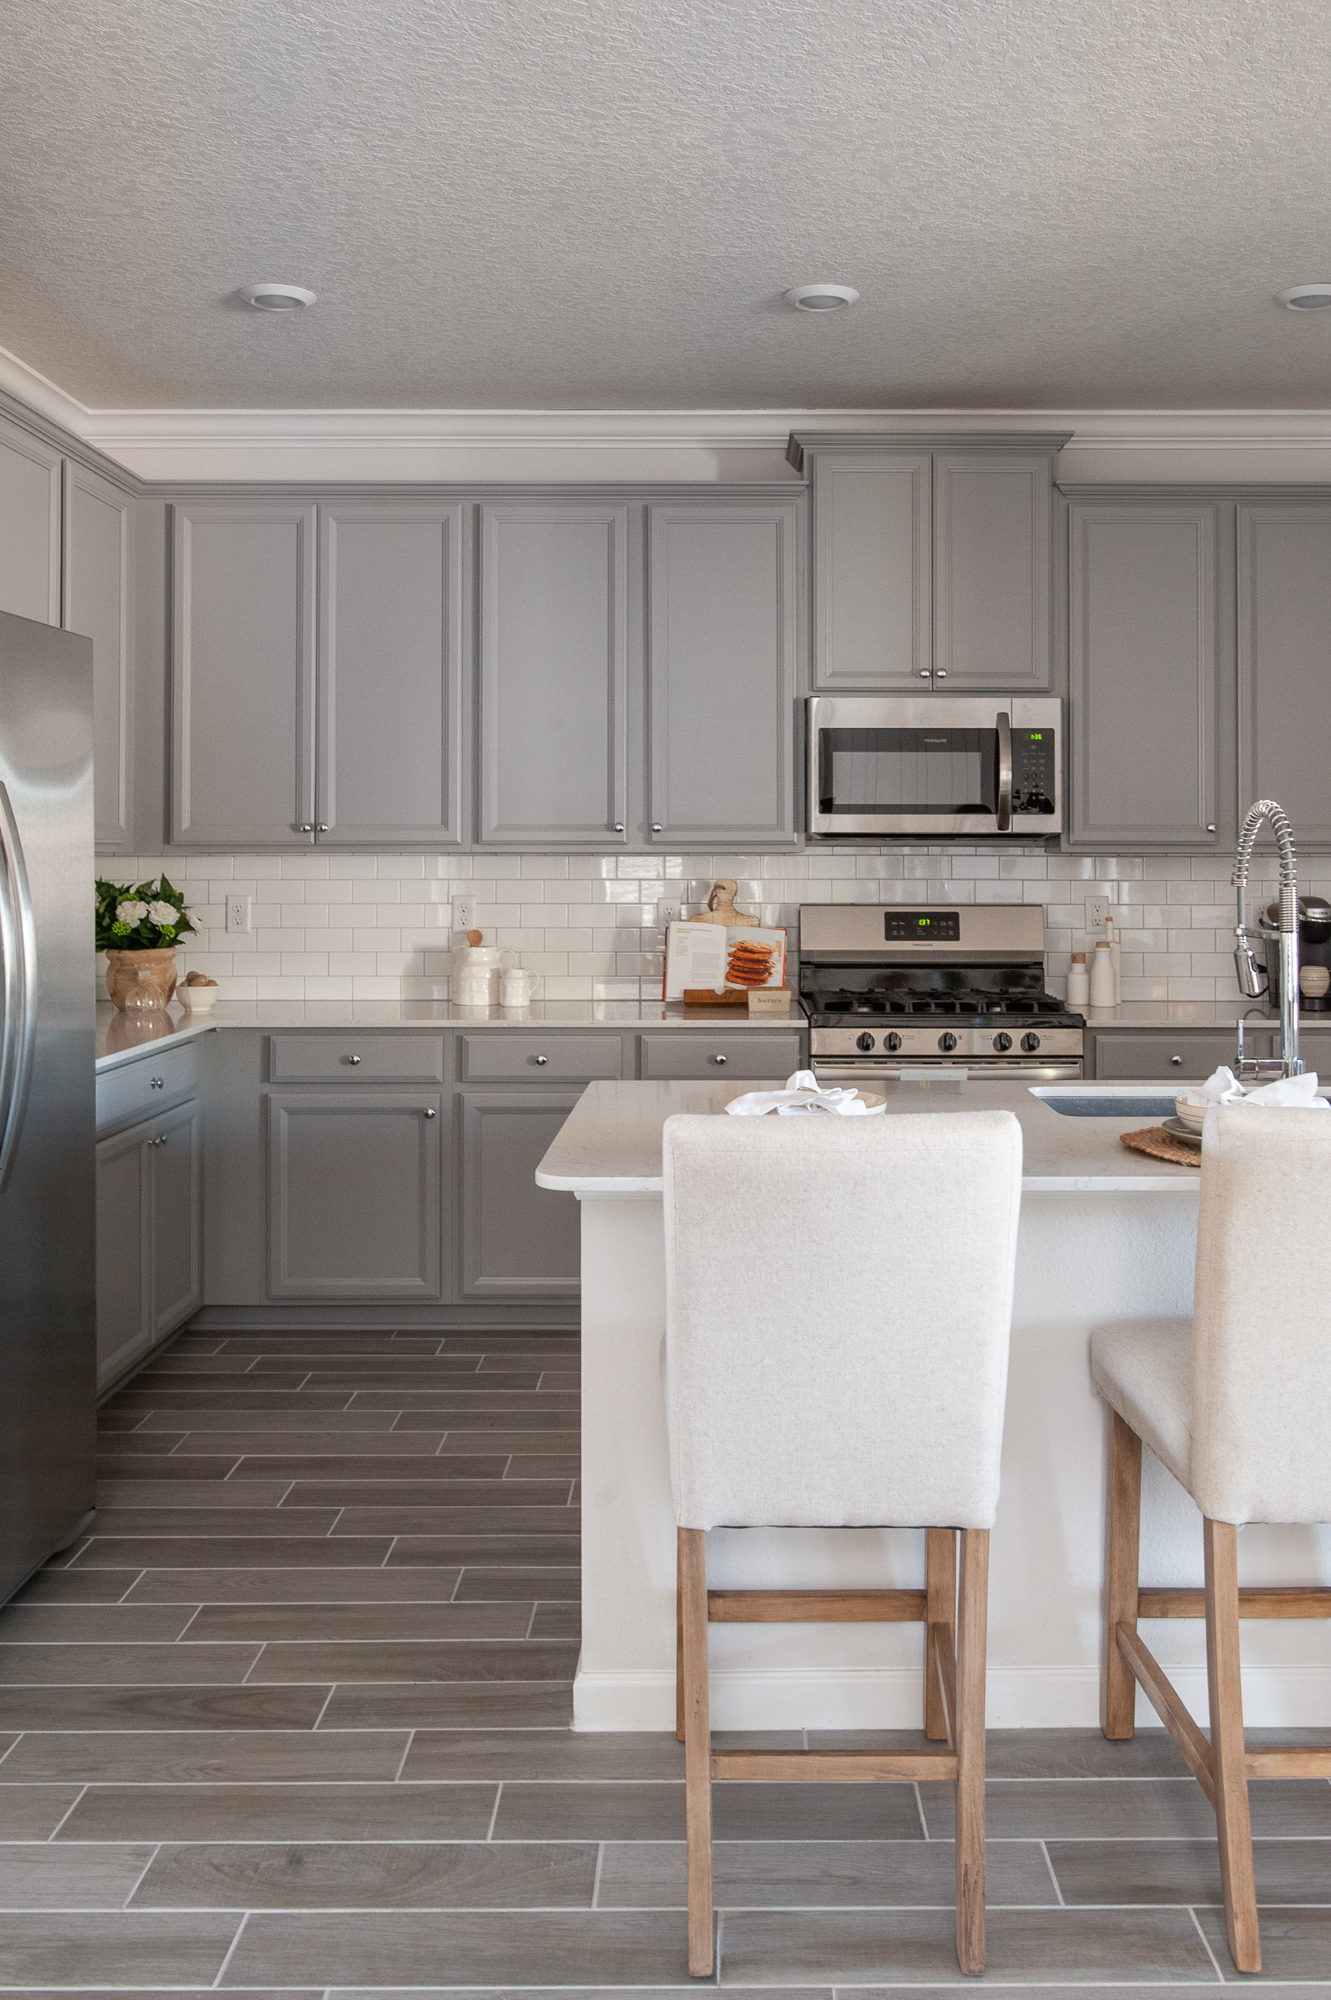 Micamy_Interior Designer_Design_Interior_Model_Merchandising_Kitchen_Grey_Cabinets_Forty West_Lennar_Place Setting_SubwayTile_Farmhouse_TileFloor.jpg